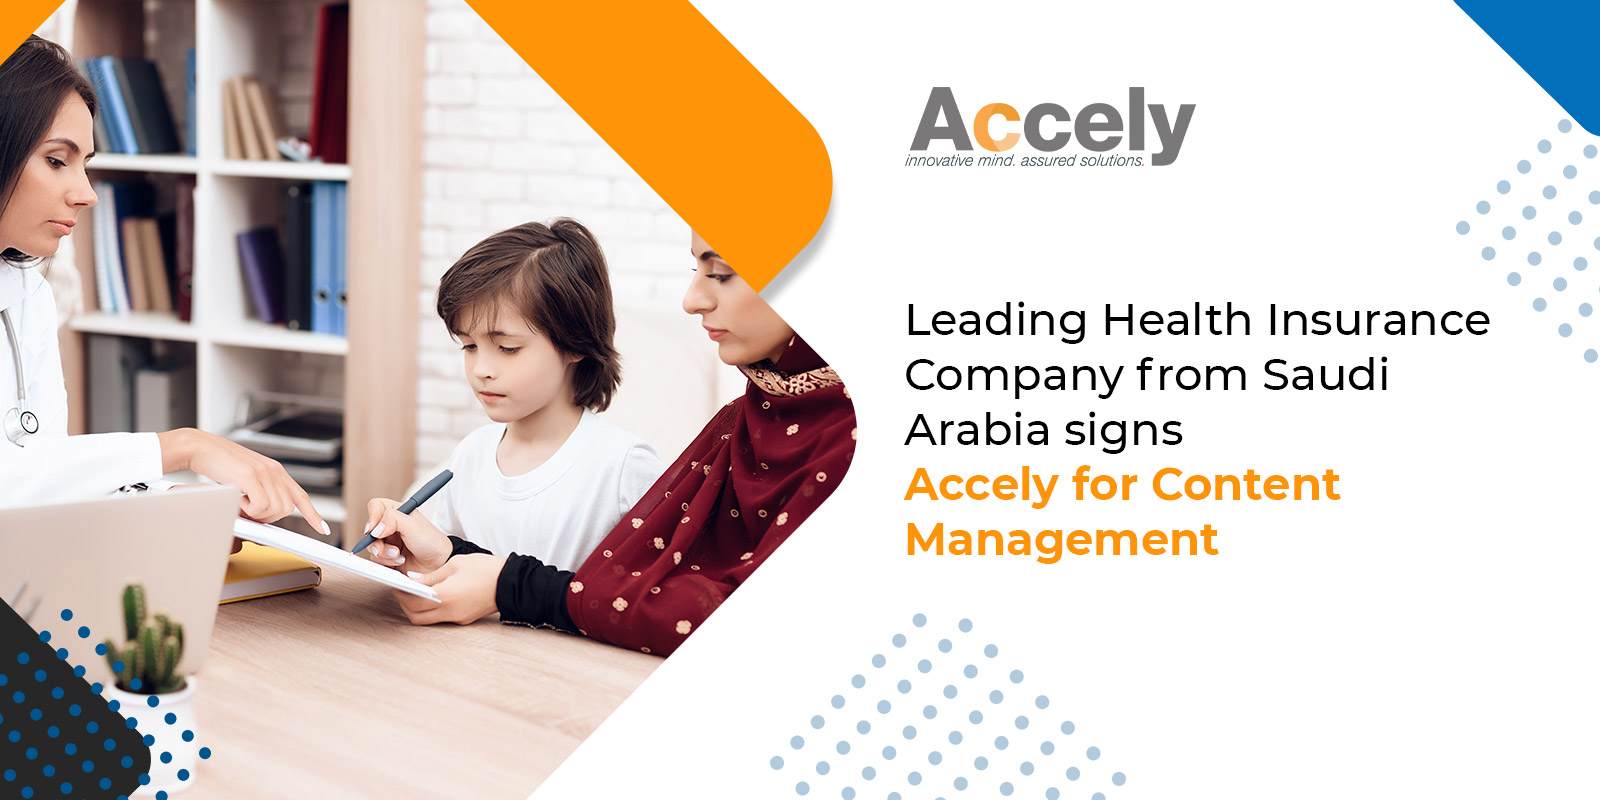 Leading Health Insurance Company from Saudi Arabia signs Accely for Content Management